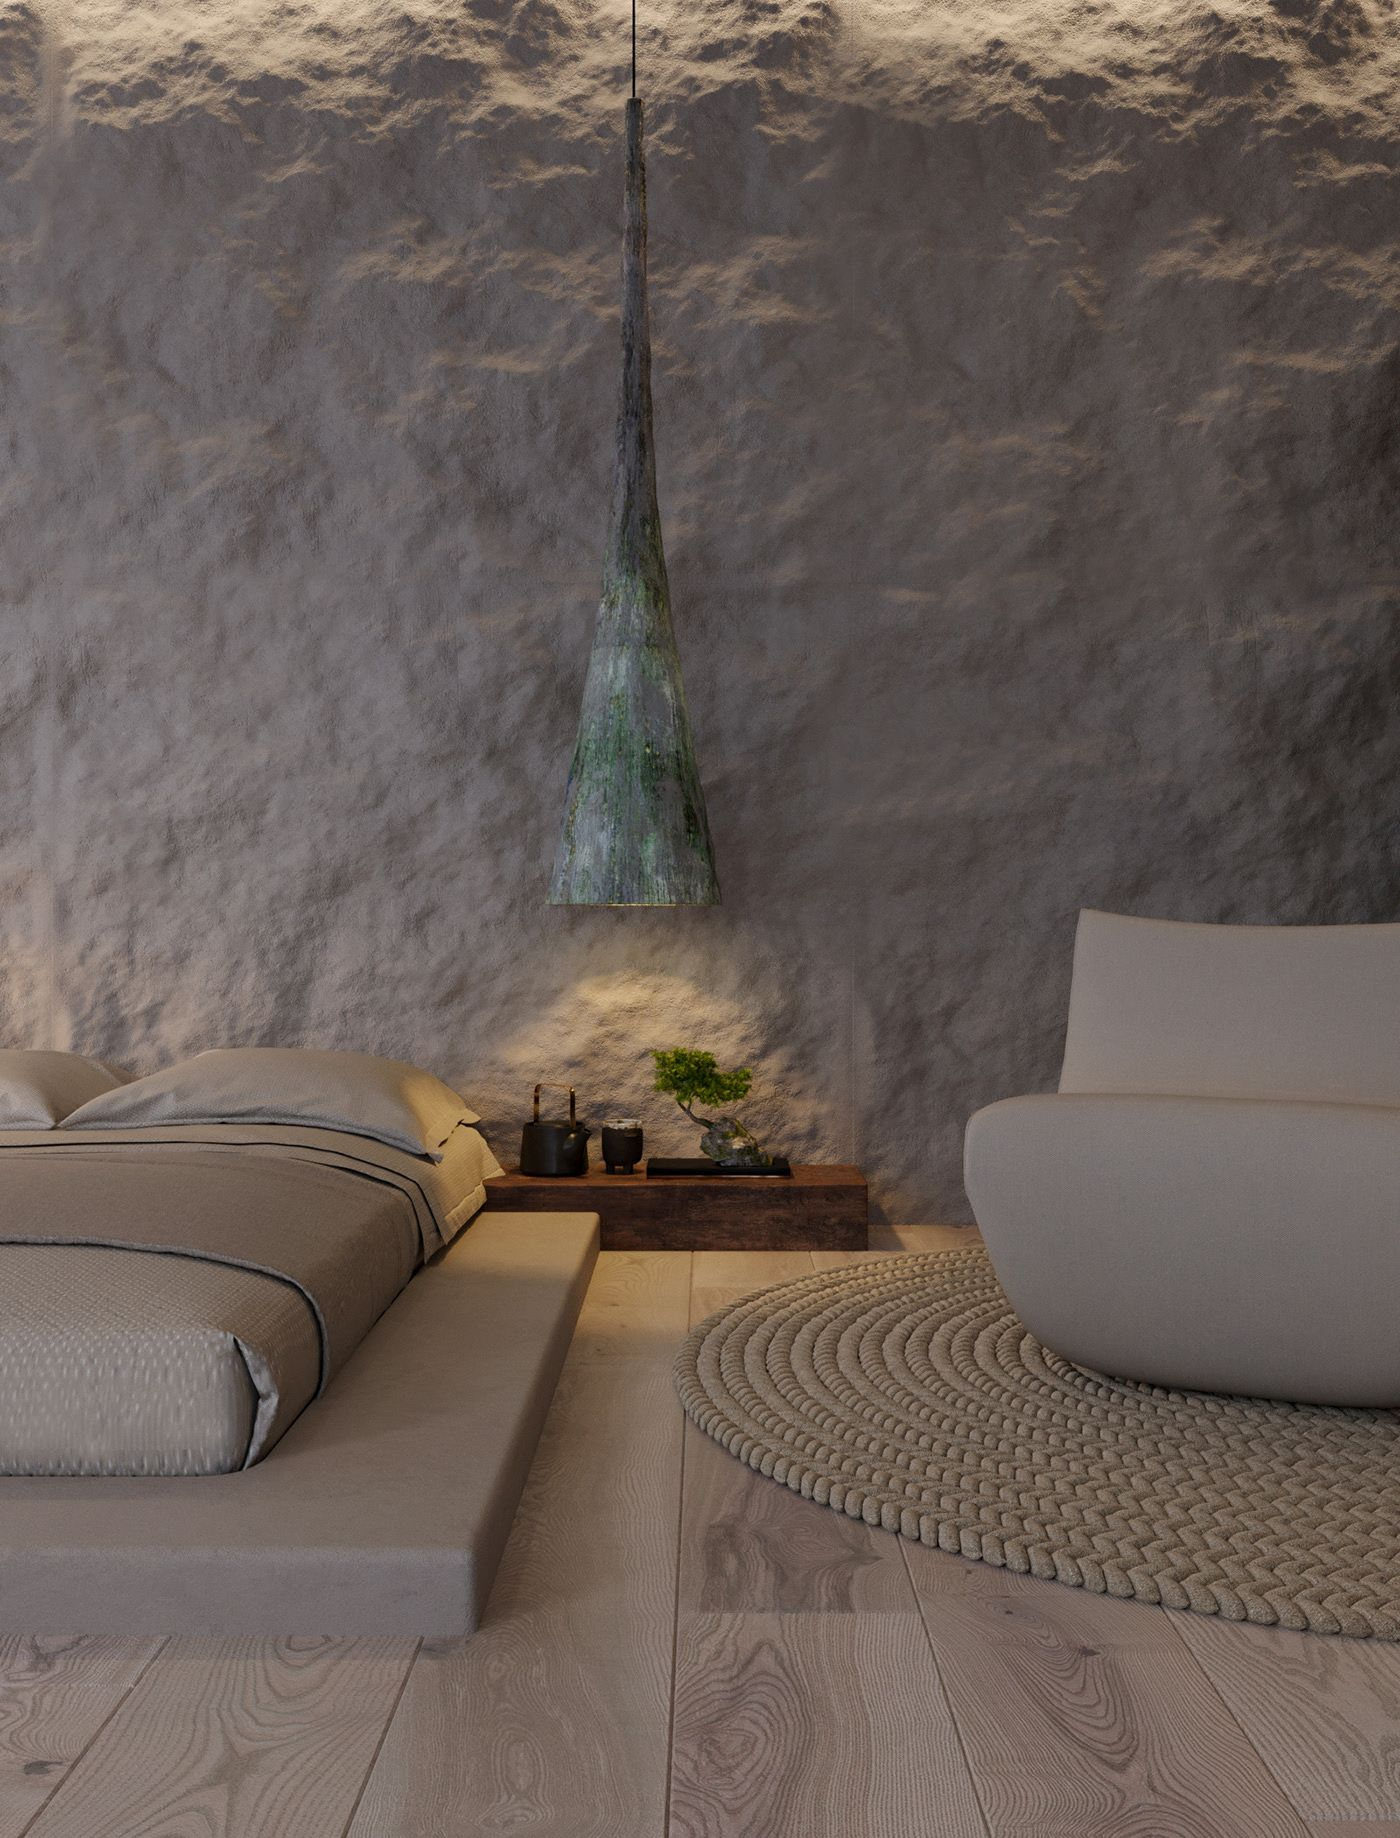 Fabulous bedroom embraces ructic textural charm along with understated modern minimalism